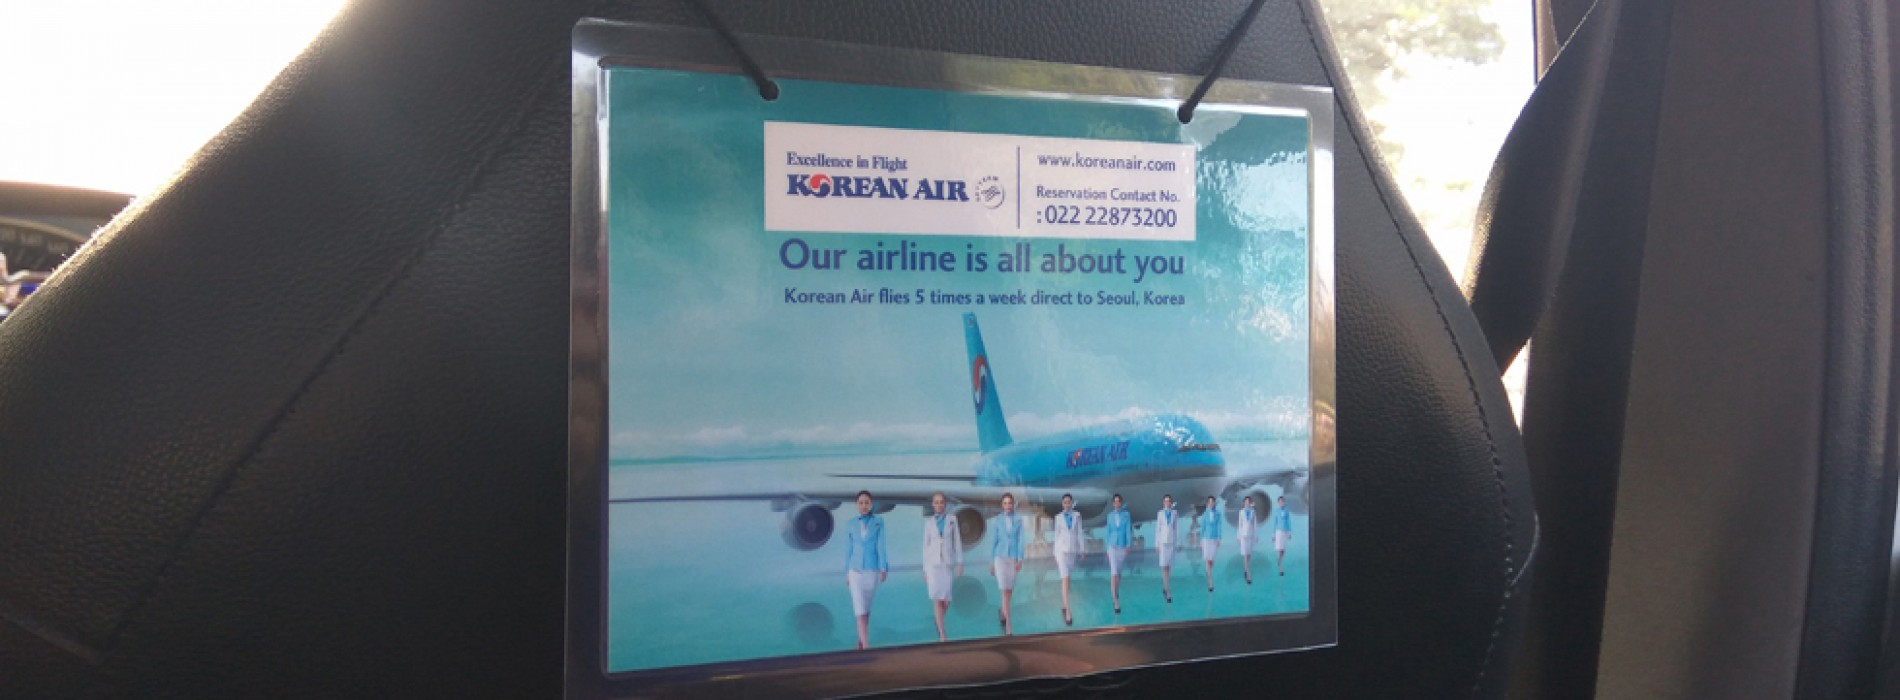 Korean Air and Korea Tourism Organisation (KTO's) joint marketing initiative